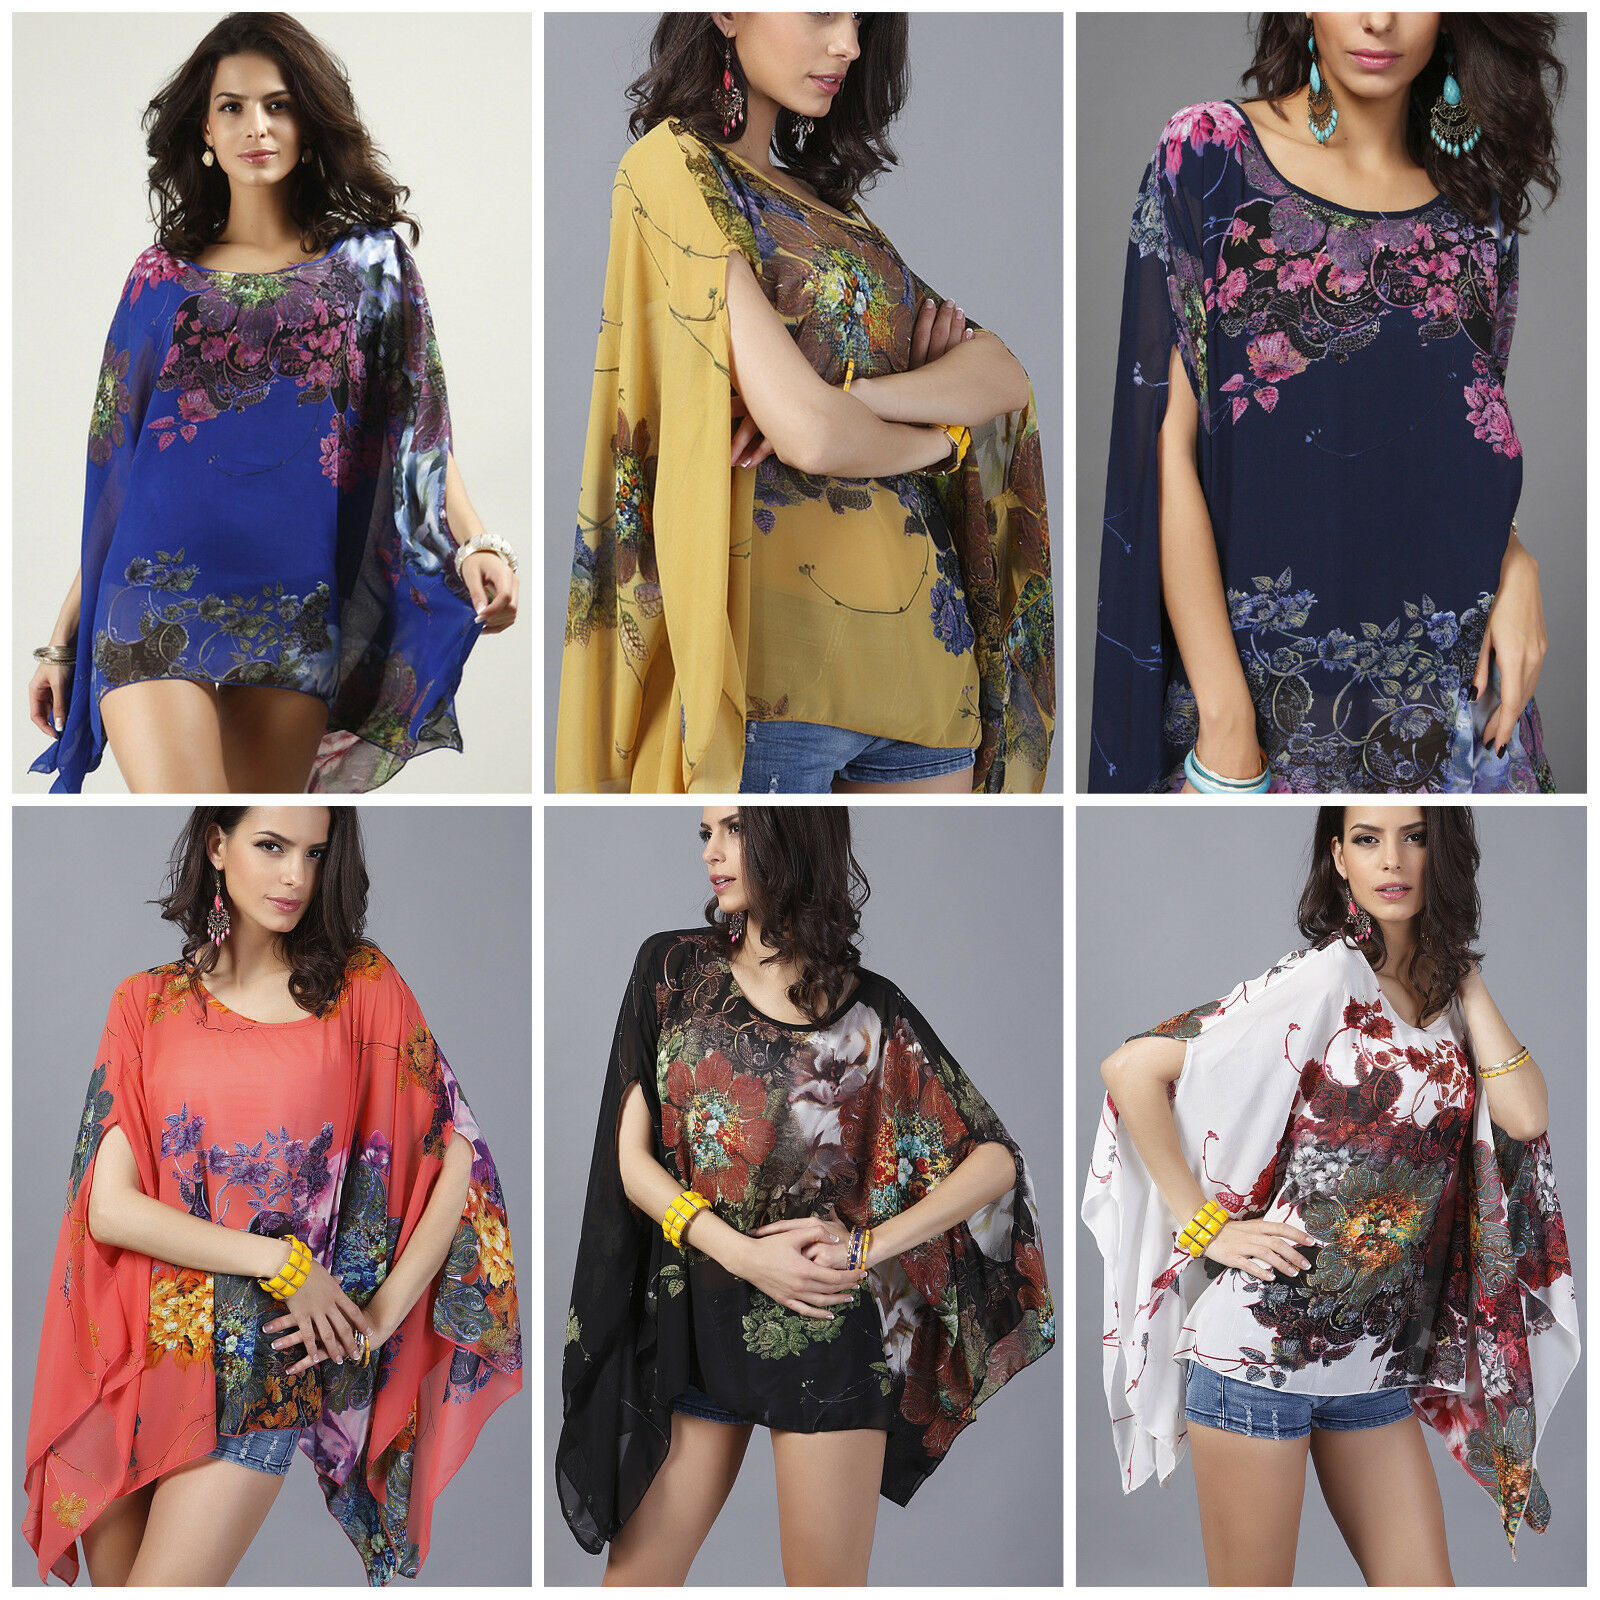 Women's Swimsuit Cover Up Dress Floral Chiffon Kimono Batwing Summer Beachwear Clothing, Shoes & Accessories